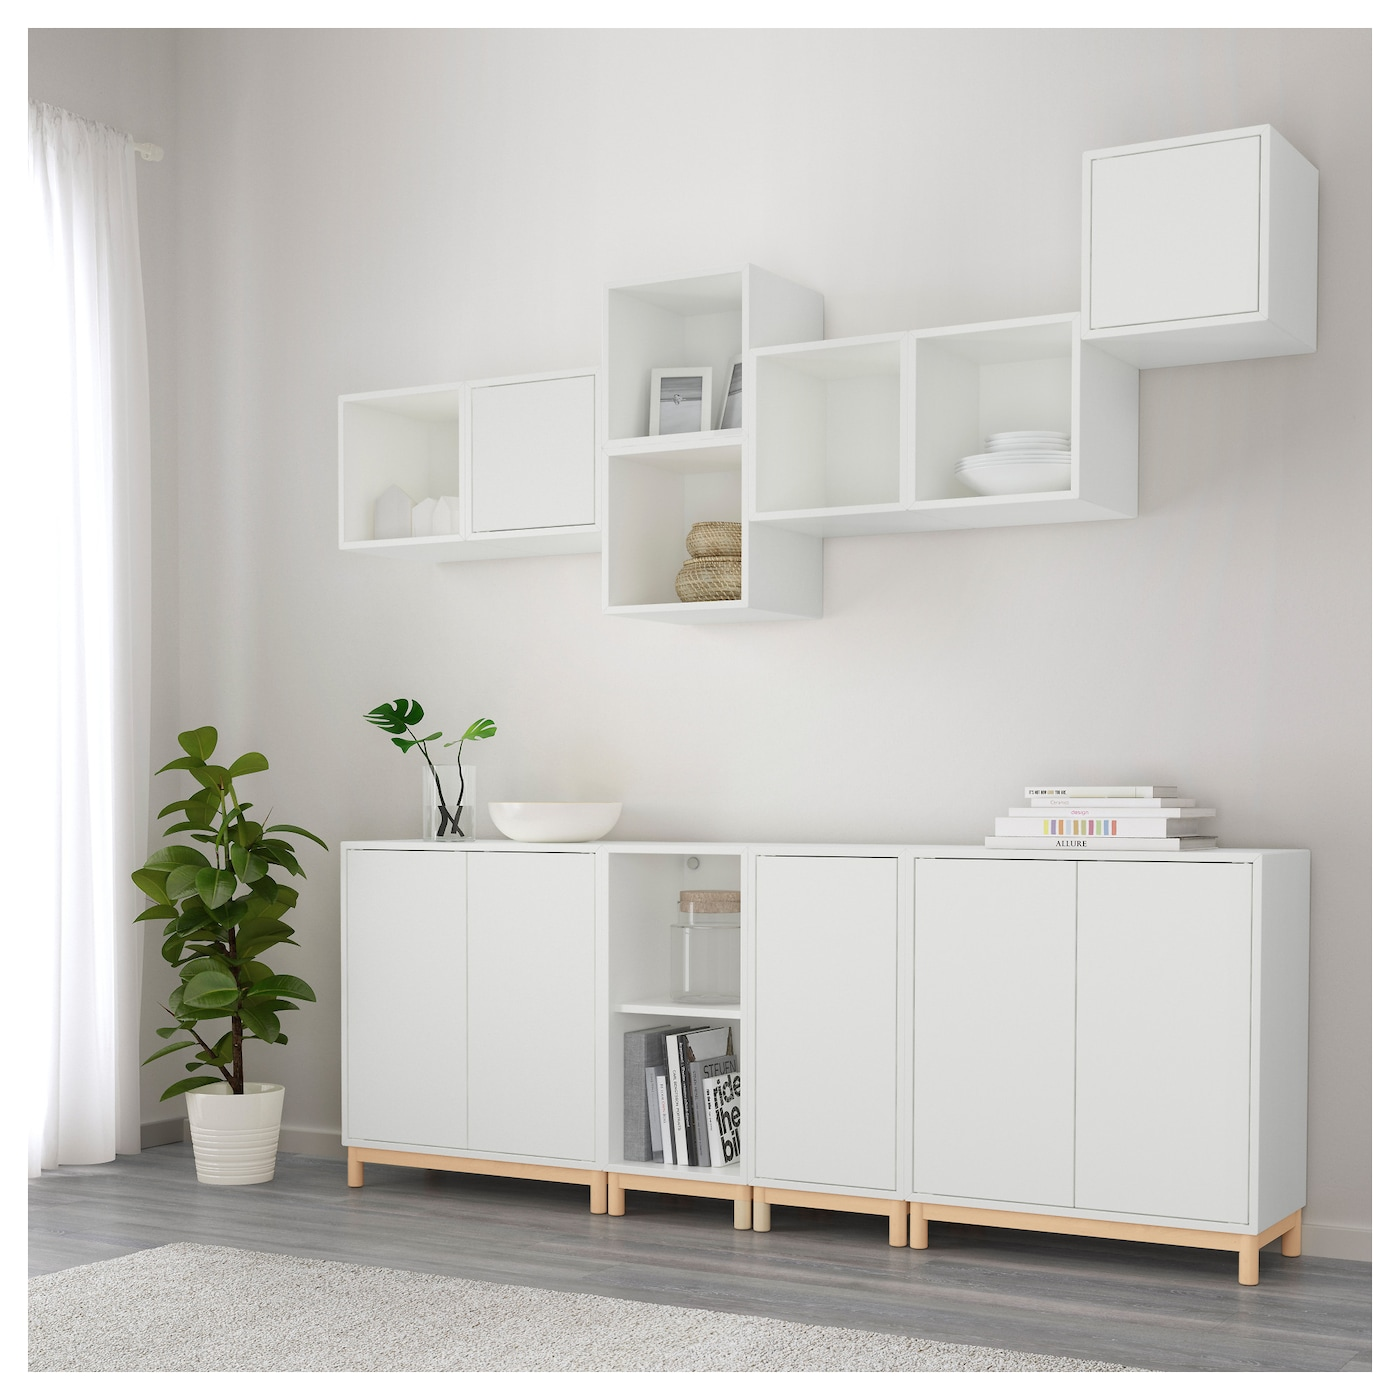 eket cabinet combination with legs white 210x35x210 cm ikea. Black Bedroom Furniture Sets. Home Design Ideas